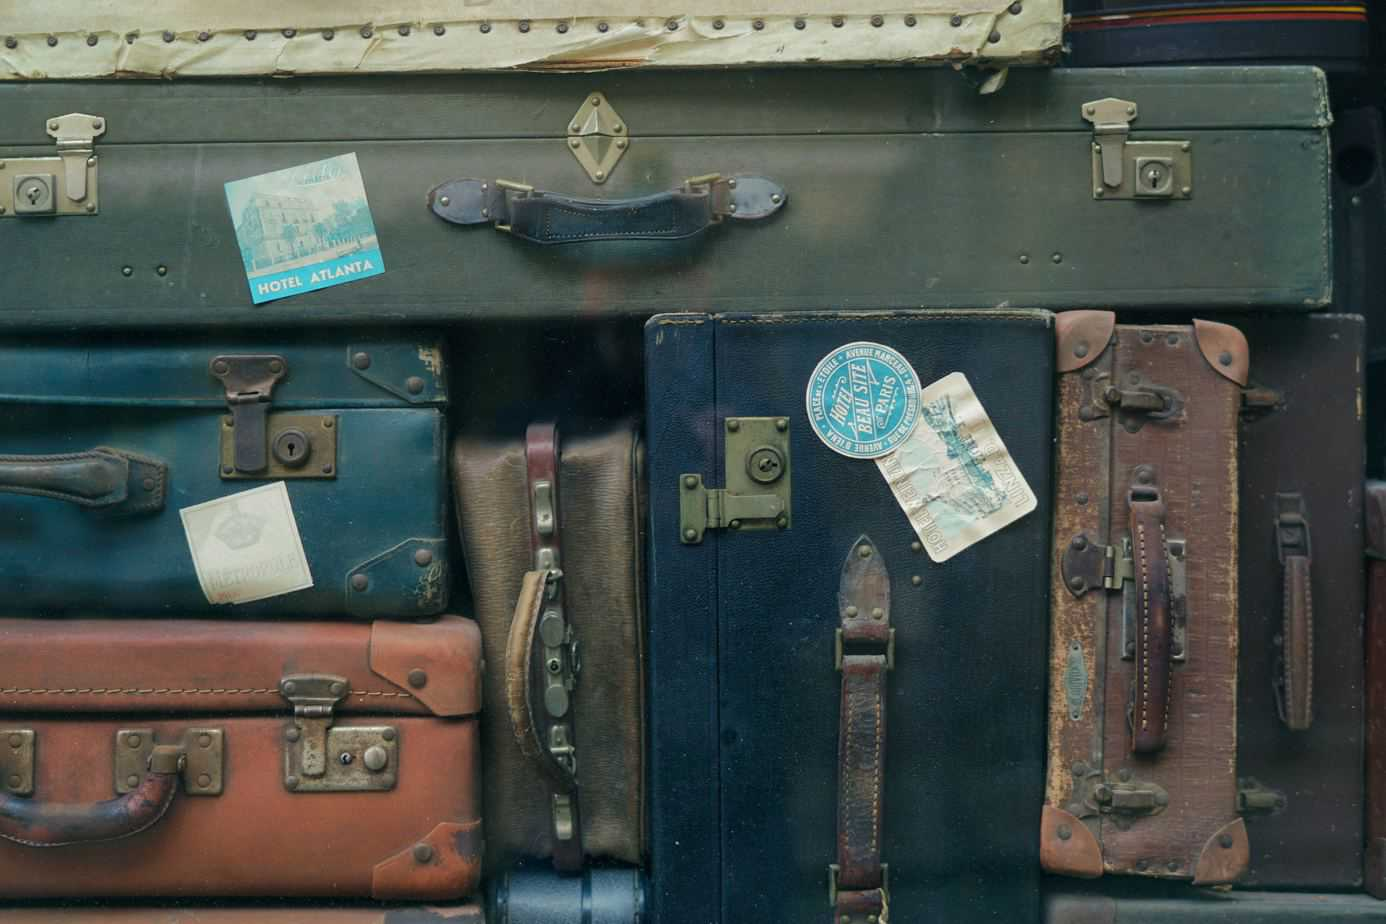 Antique suitcases together